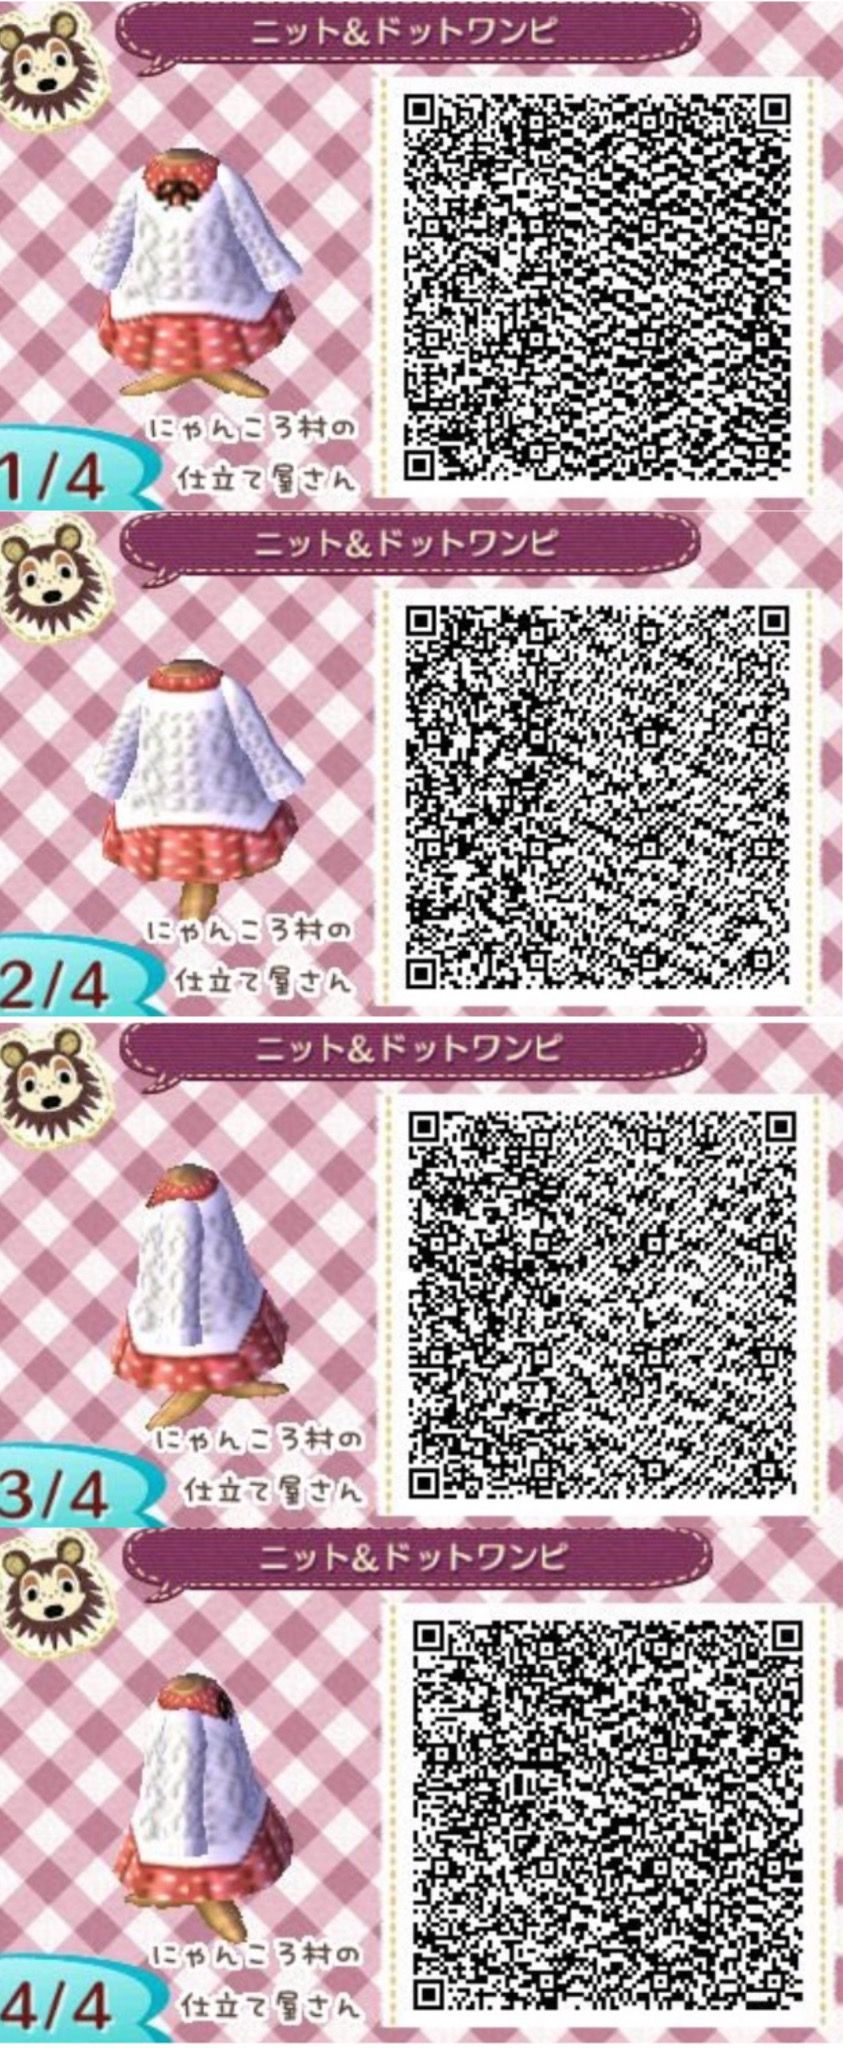 Animal crossing new leaf qr codes midna Boden qr codes animal crossing new leaf